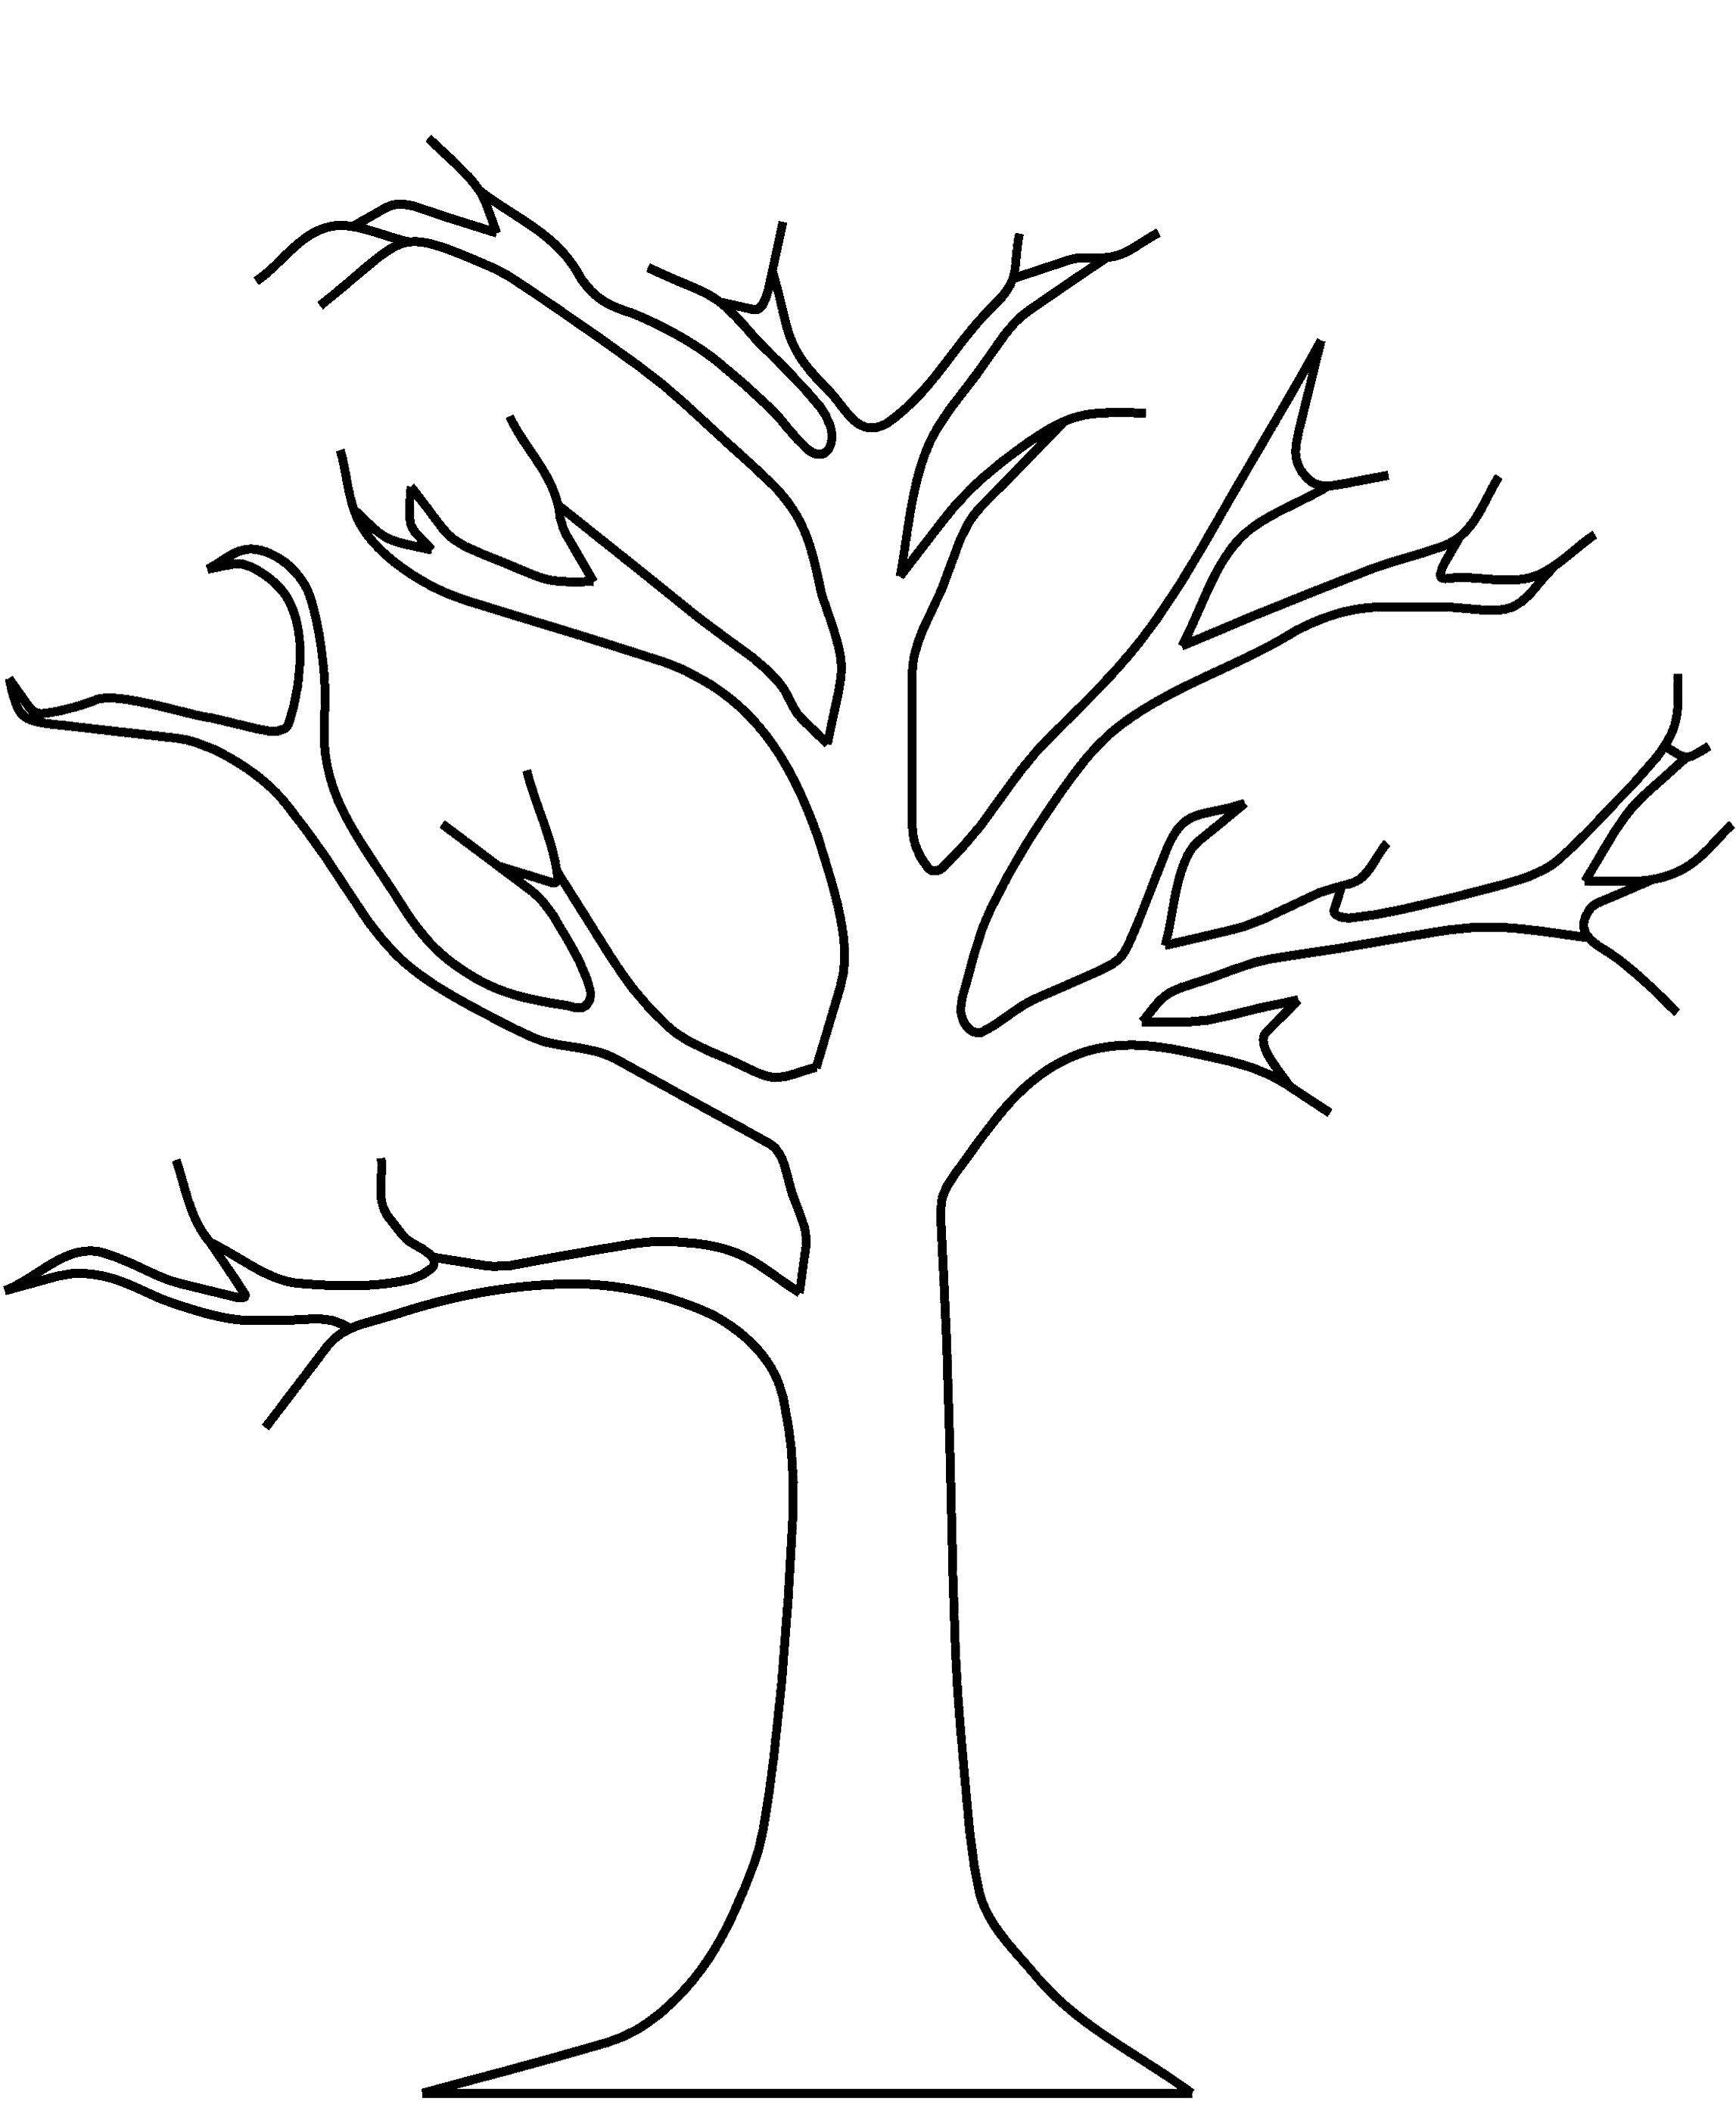 Malvorlage Baum Kostenlos 01  #art #simple #drawings #herbstfensterdekokinder